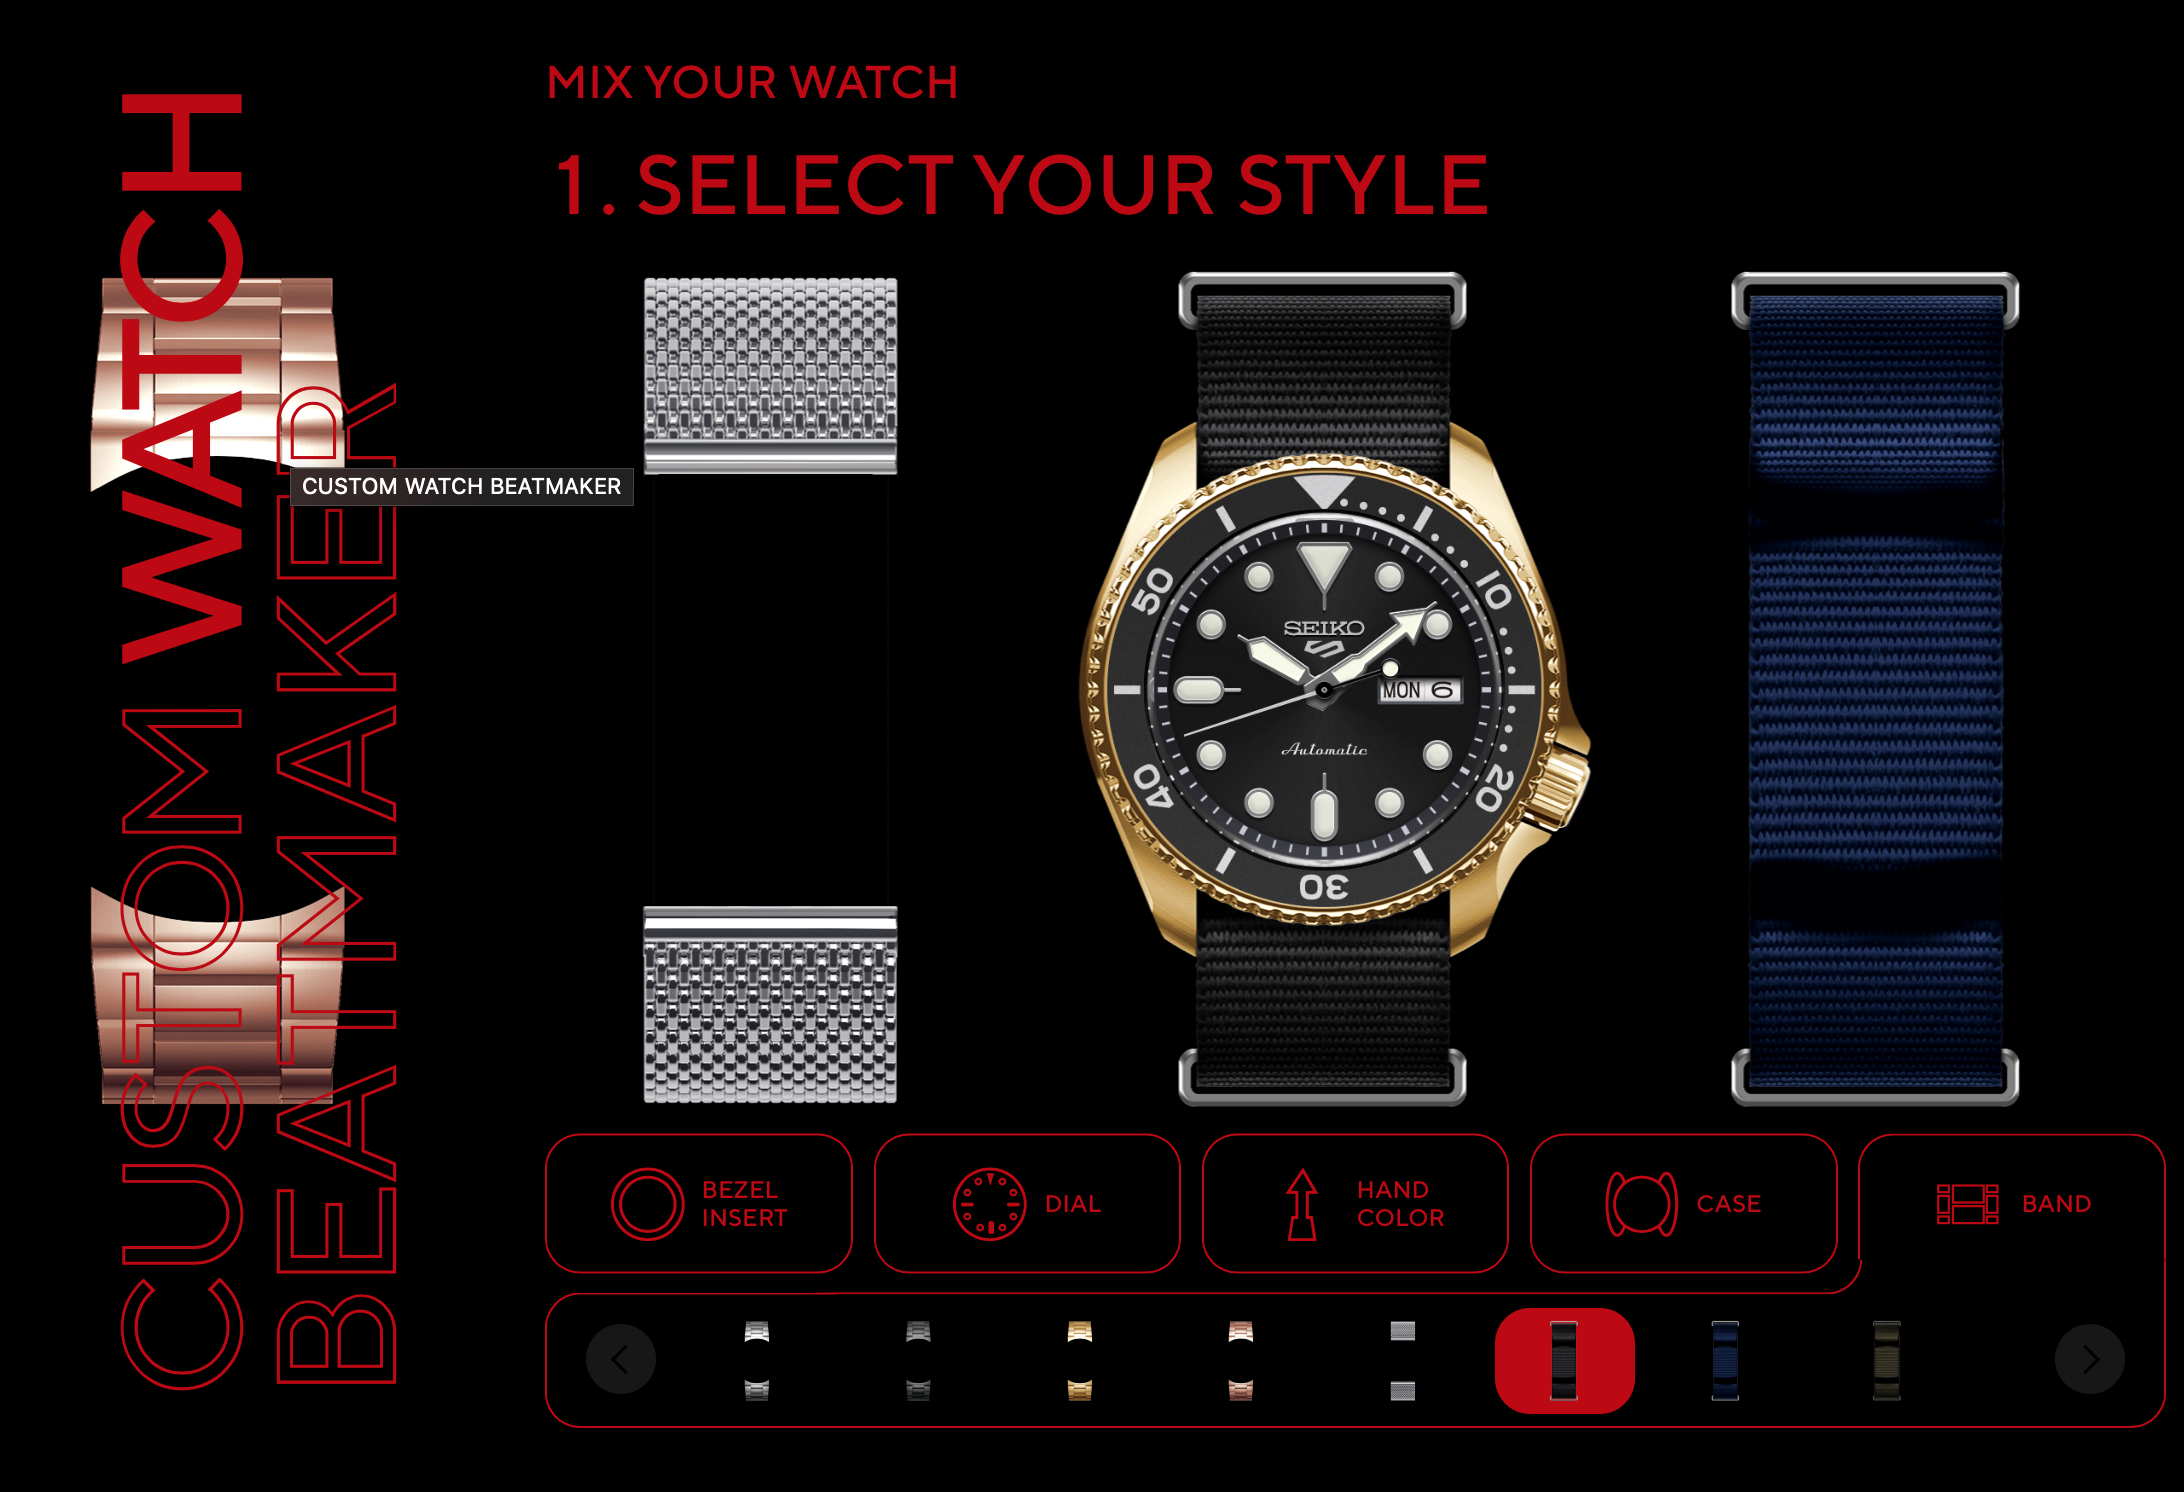 Design a Seiko 5 Sports online with the Custom Watch Beatmaker, get lots of votes, and see it released by Seiko